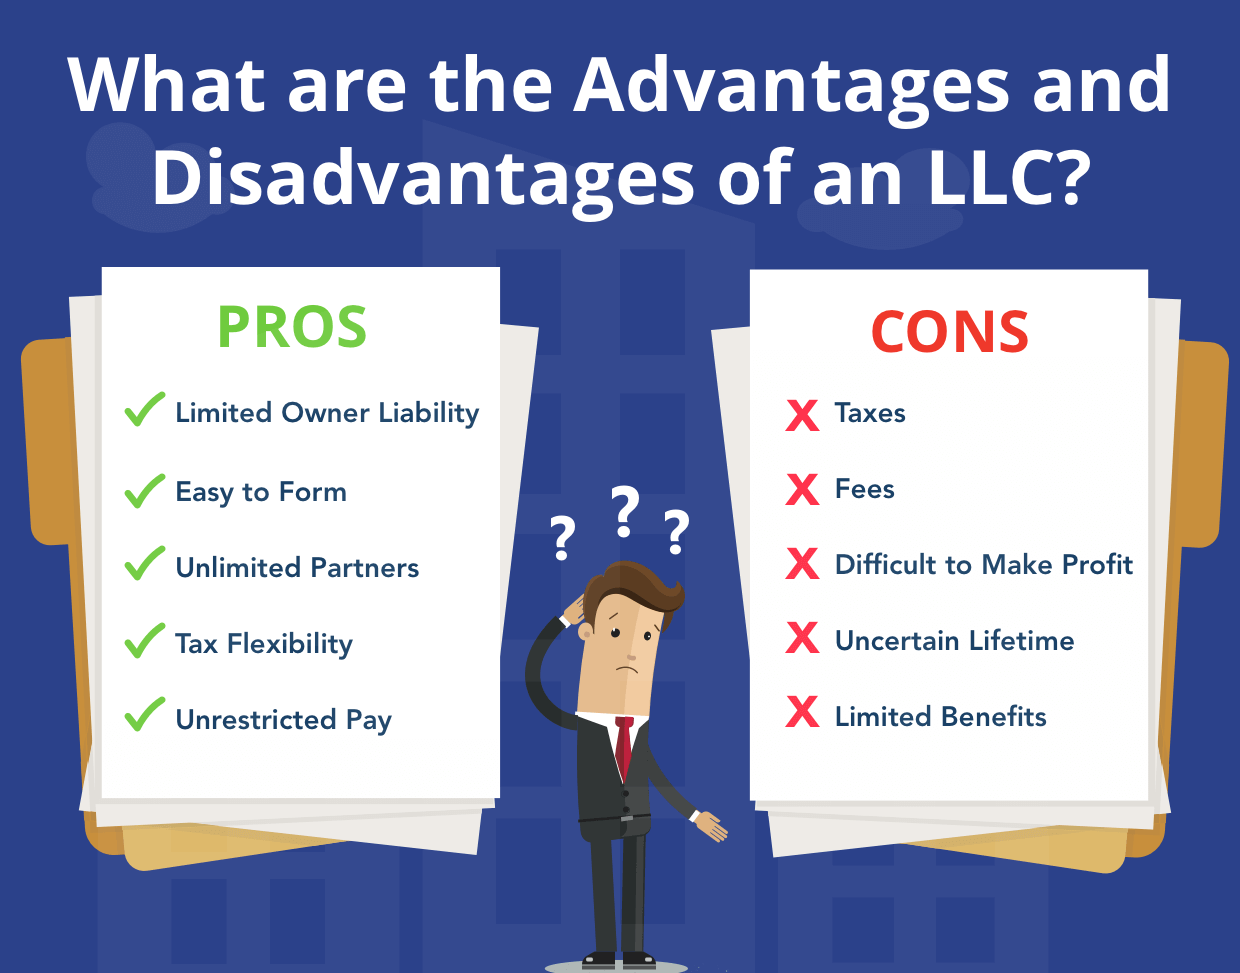 pros and cons of a limited liability company llc.png